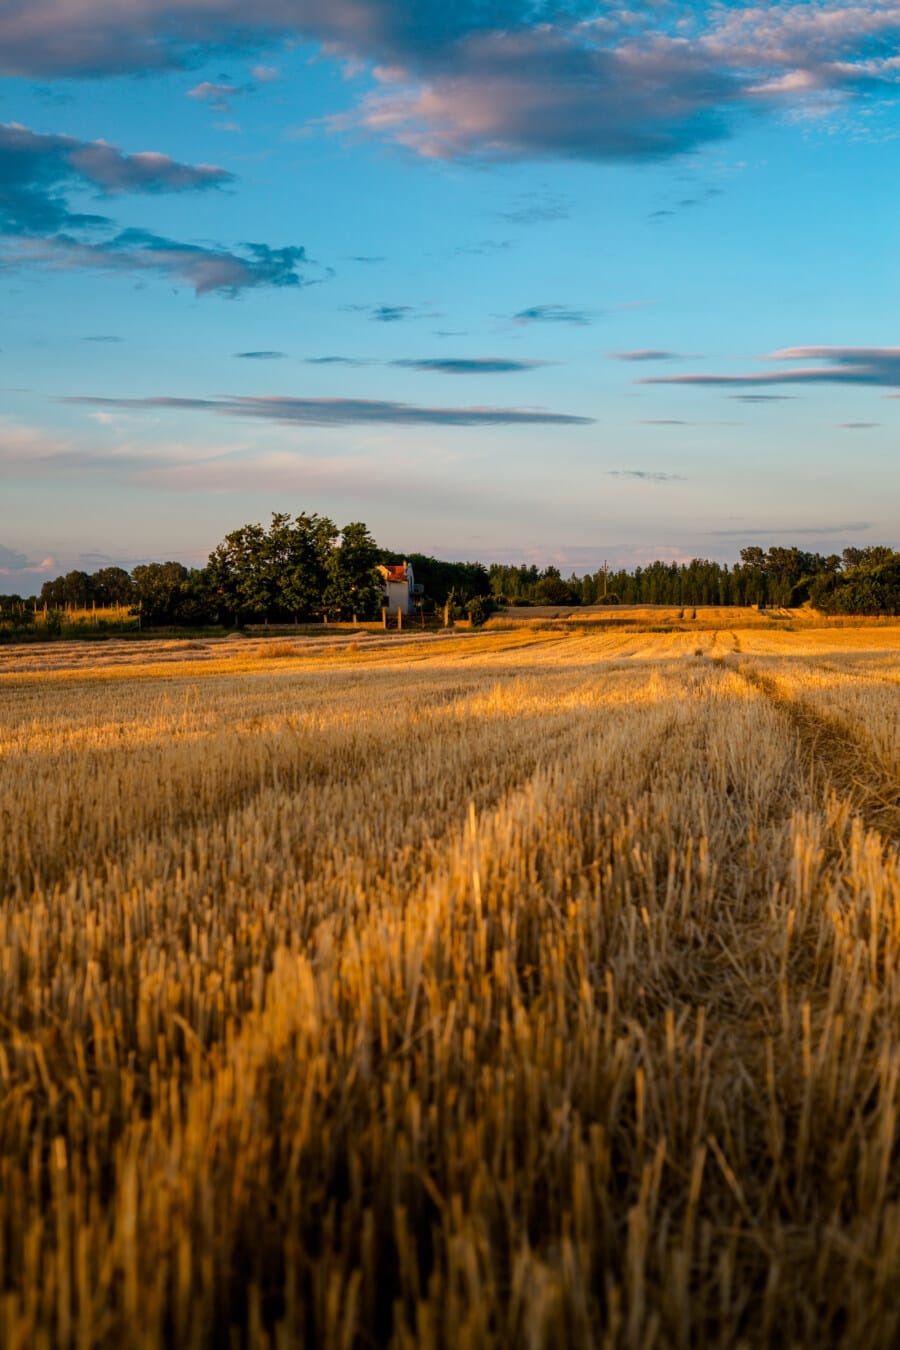 agriculture, wheatfield, wheat, rural, countryside, grass, dawn, landscape, sunset, field